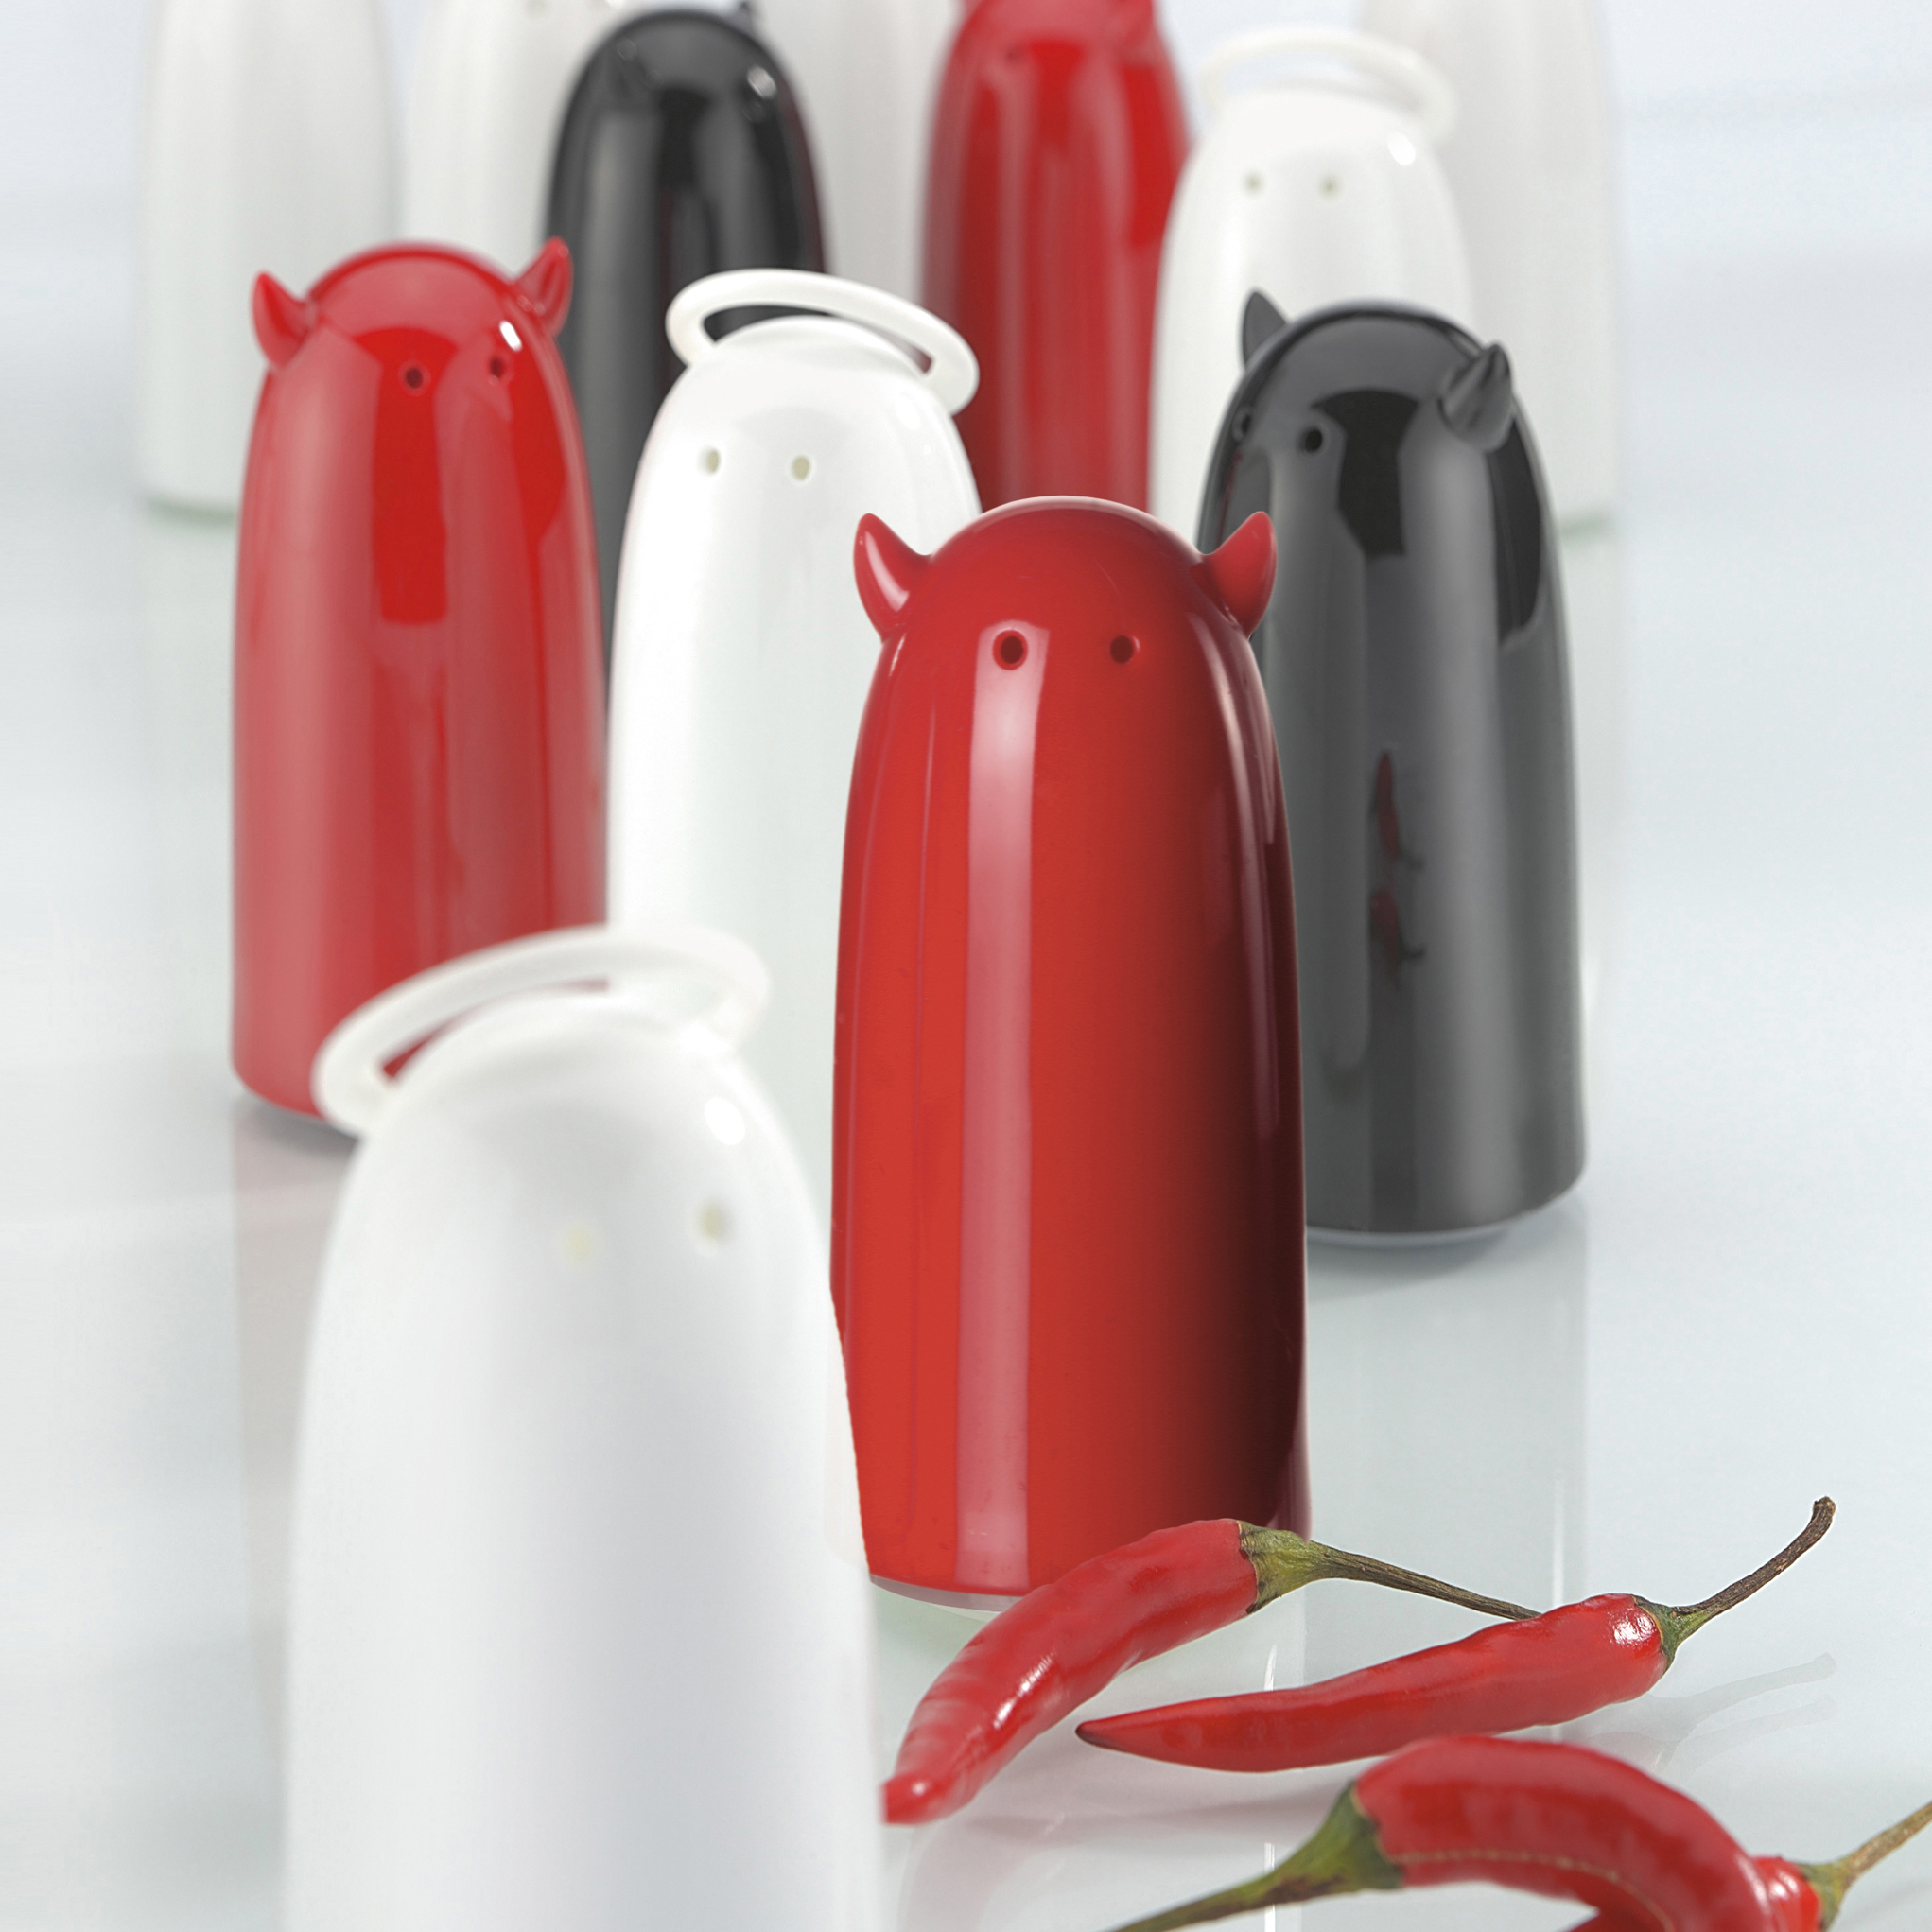 Koziol Ideas For Friends Gmbh Spicies Salt Pepper Shaker